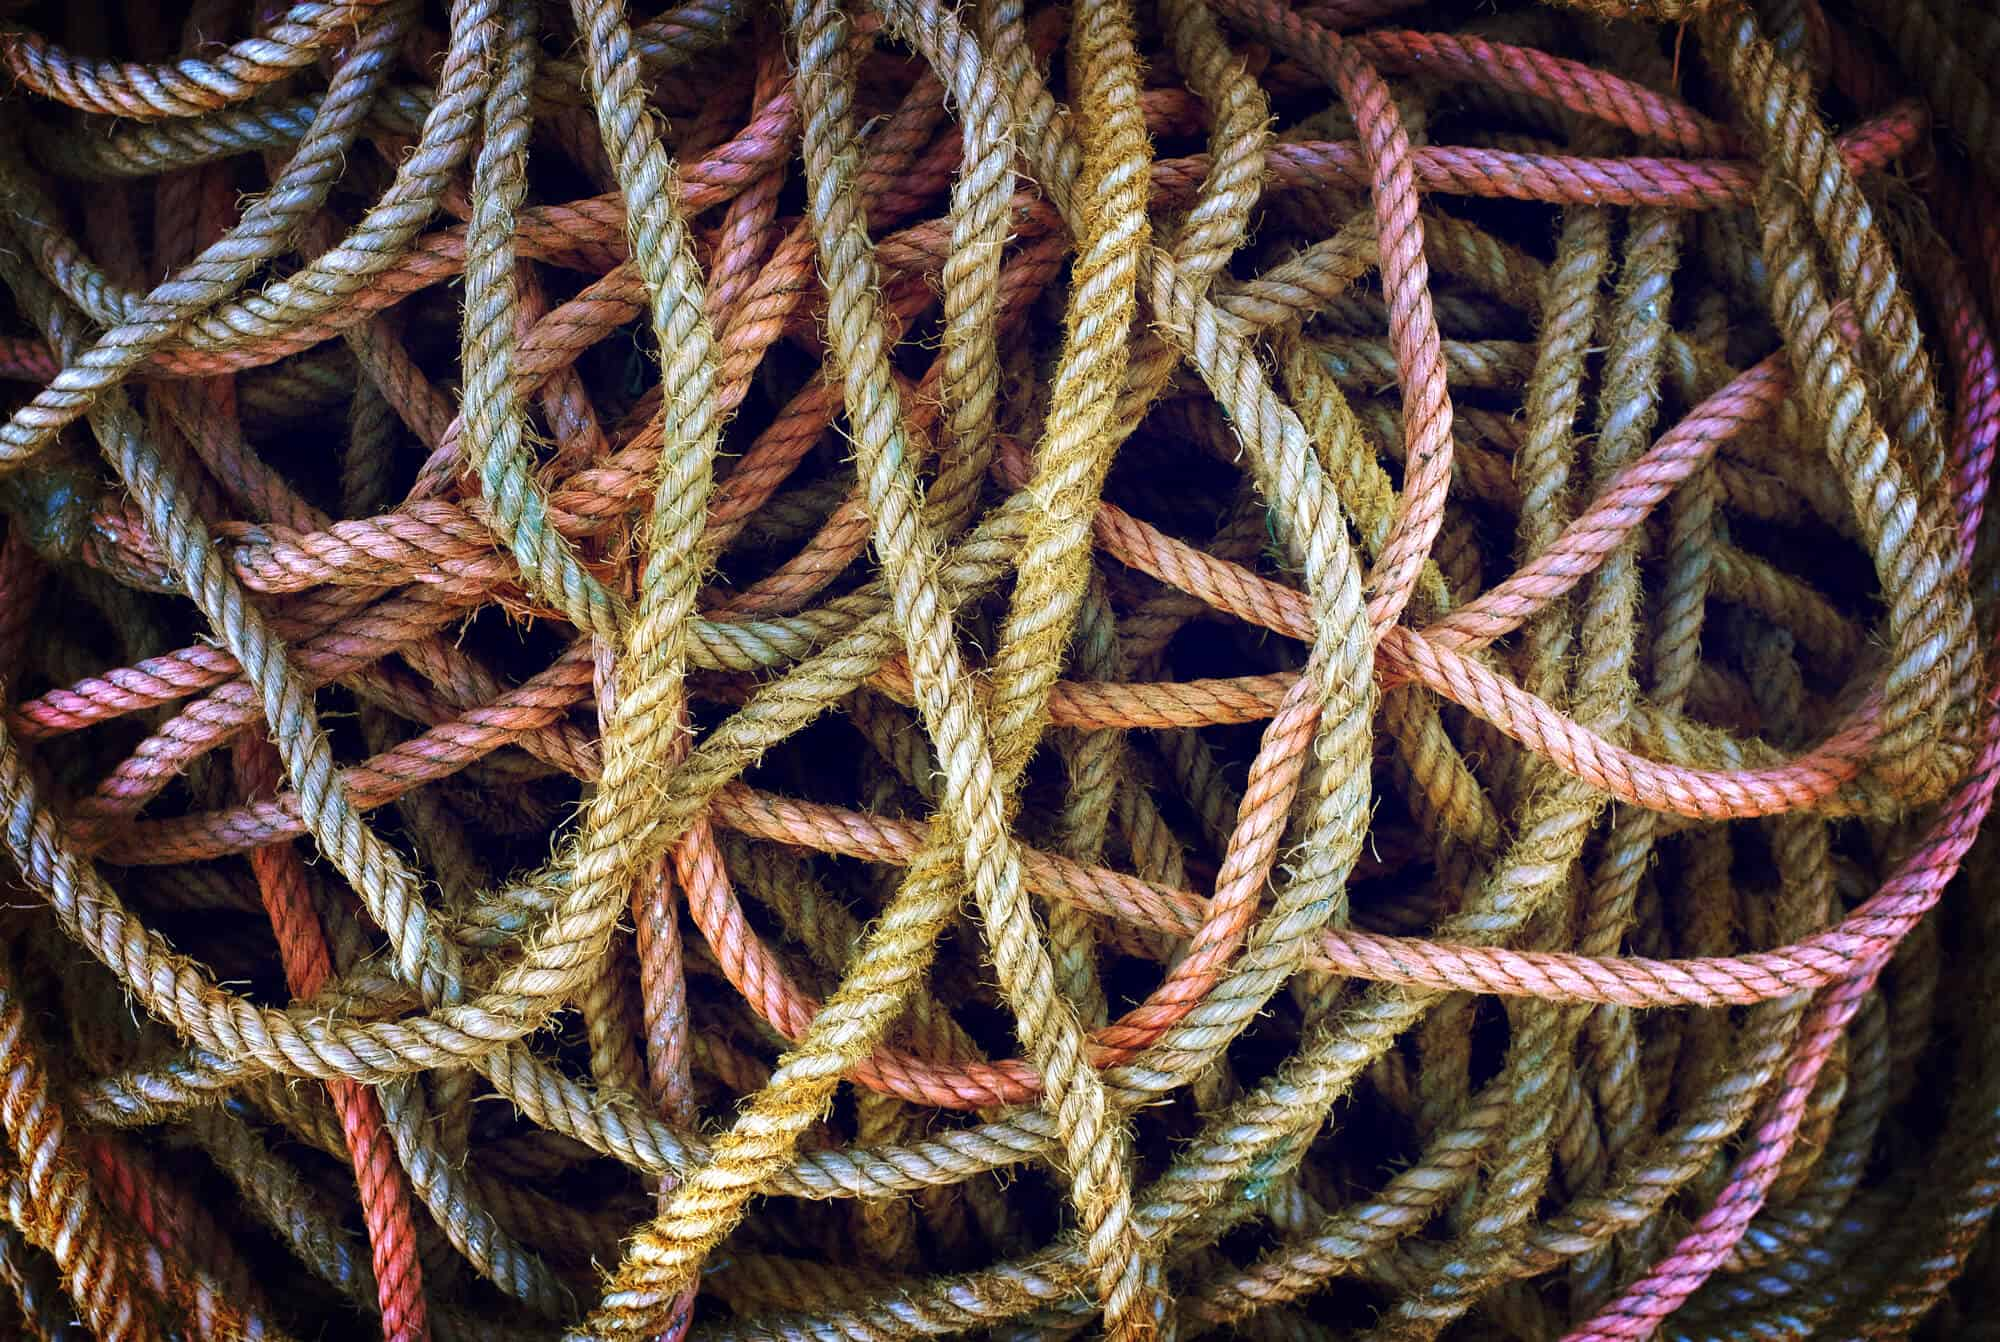 ropes for magnet fishing